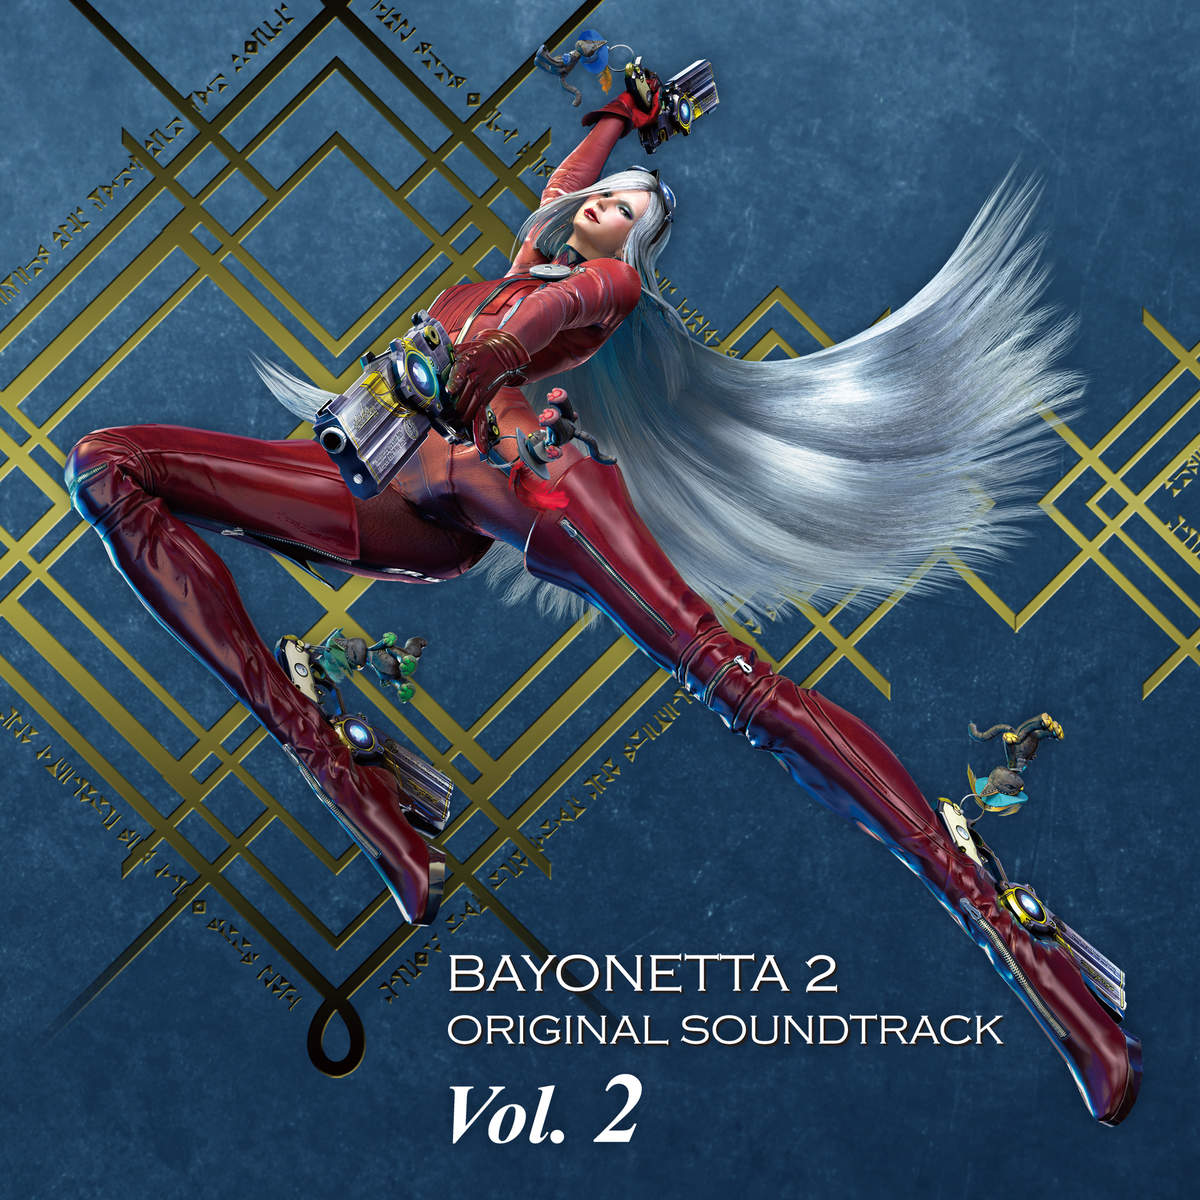 Bayonetta_2_Original_Soundtrack_Vol._2__Cover1200x1200.jpg